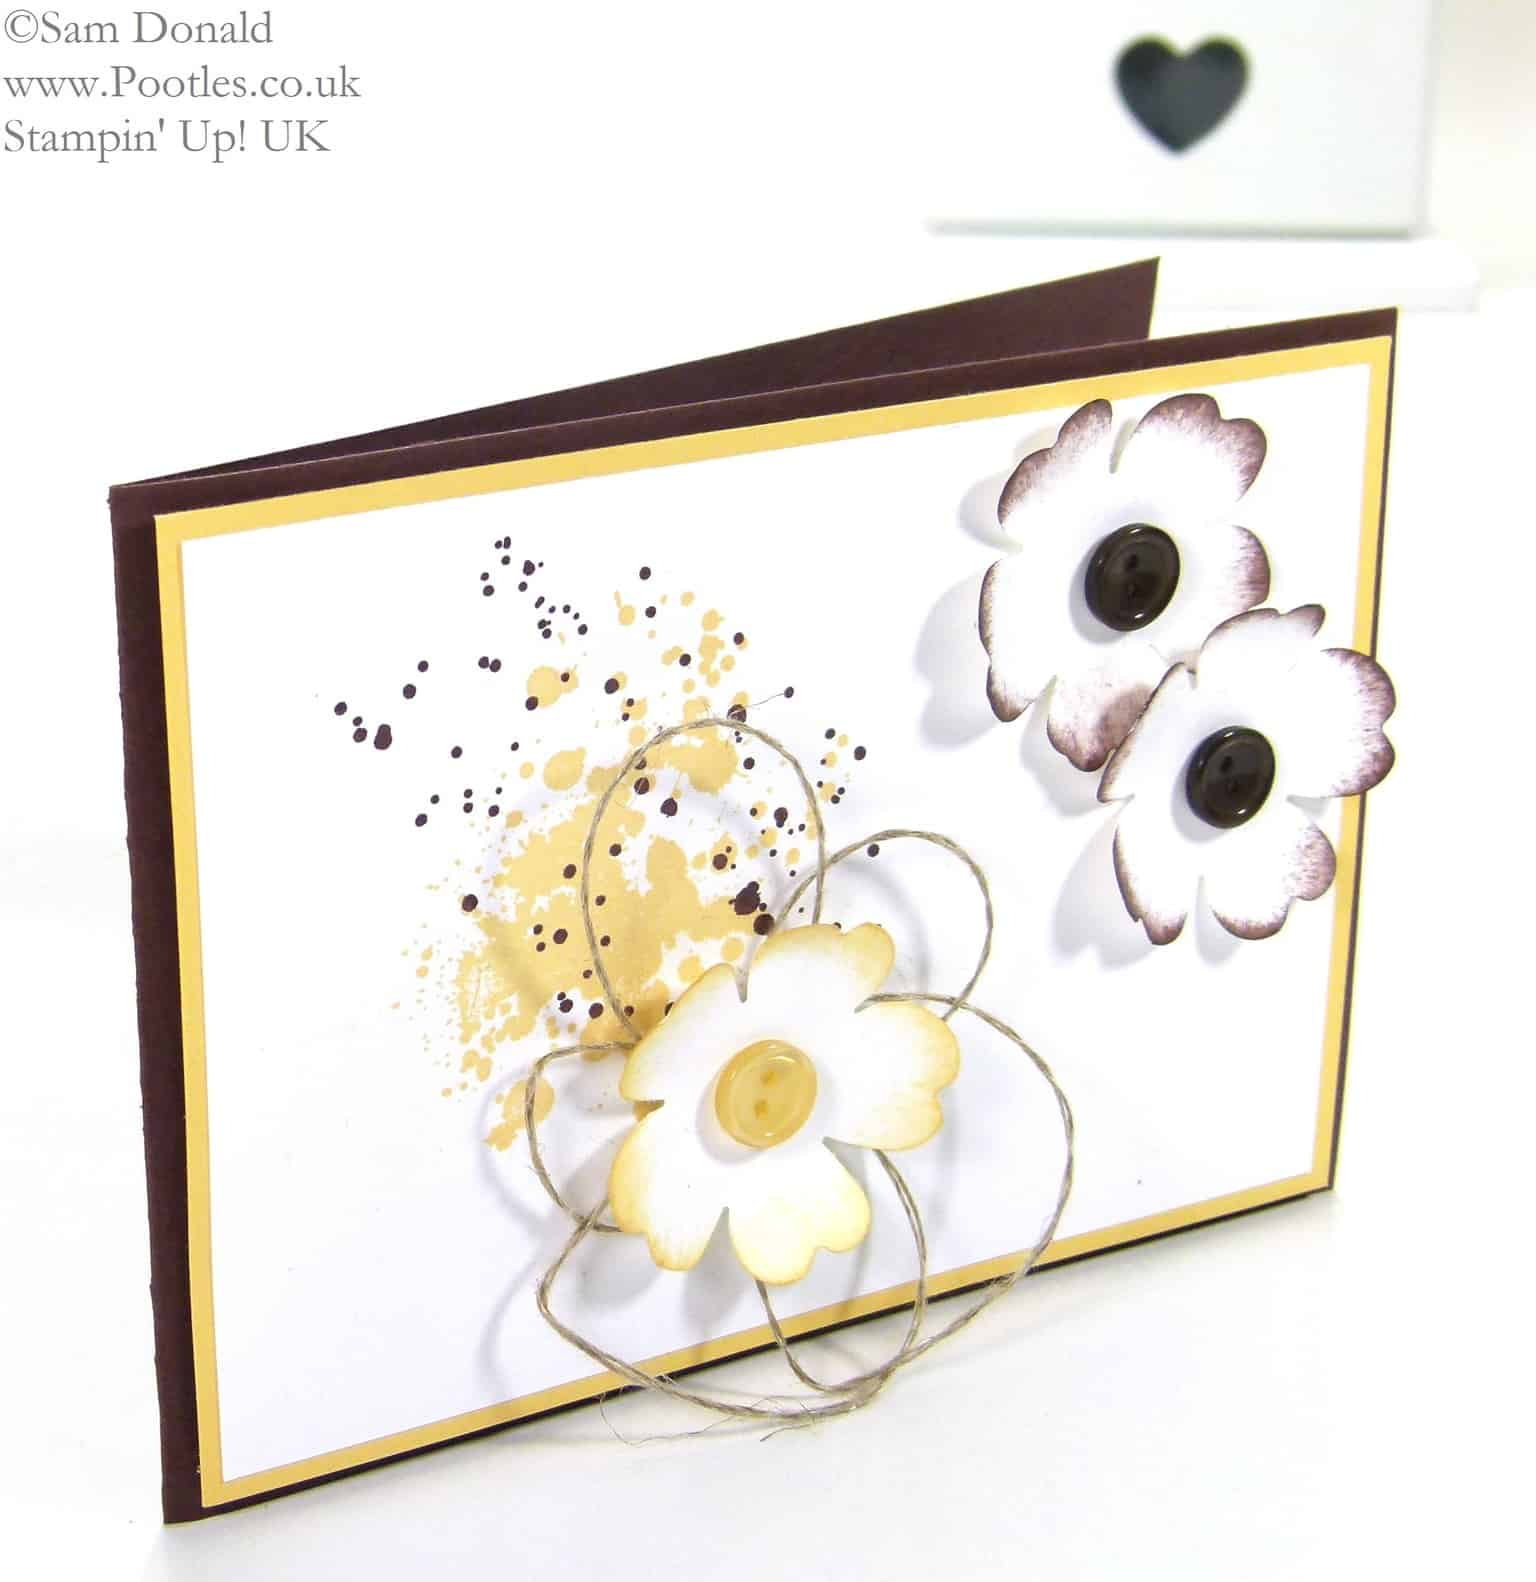 POOTLES Stampin' Up! UK Gorgeous Pansy Button Grunge